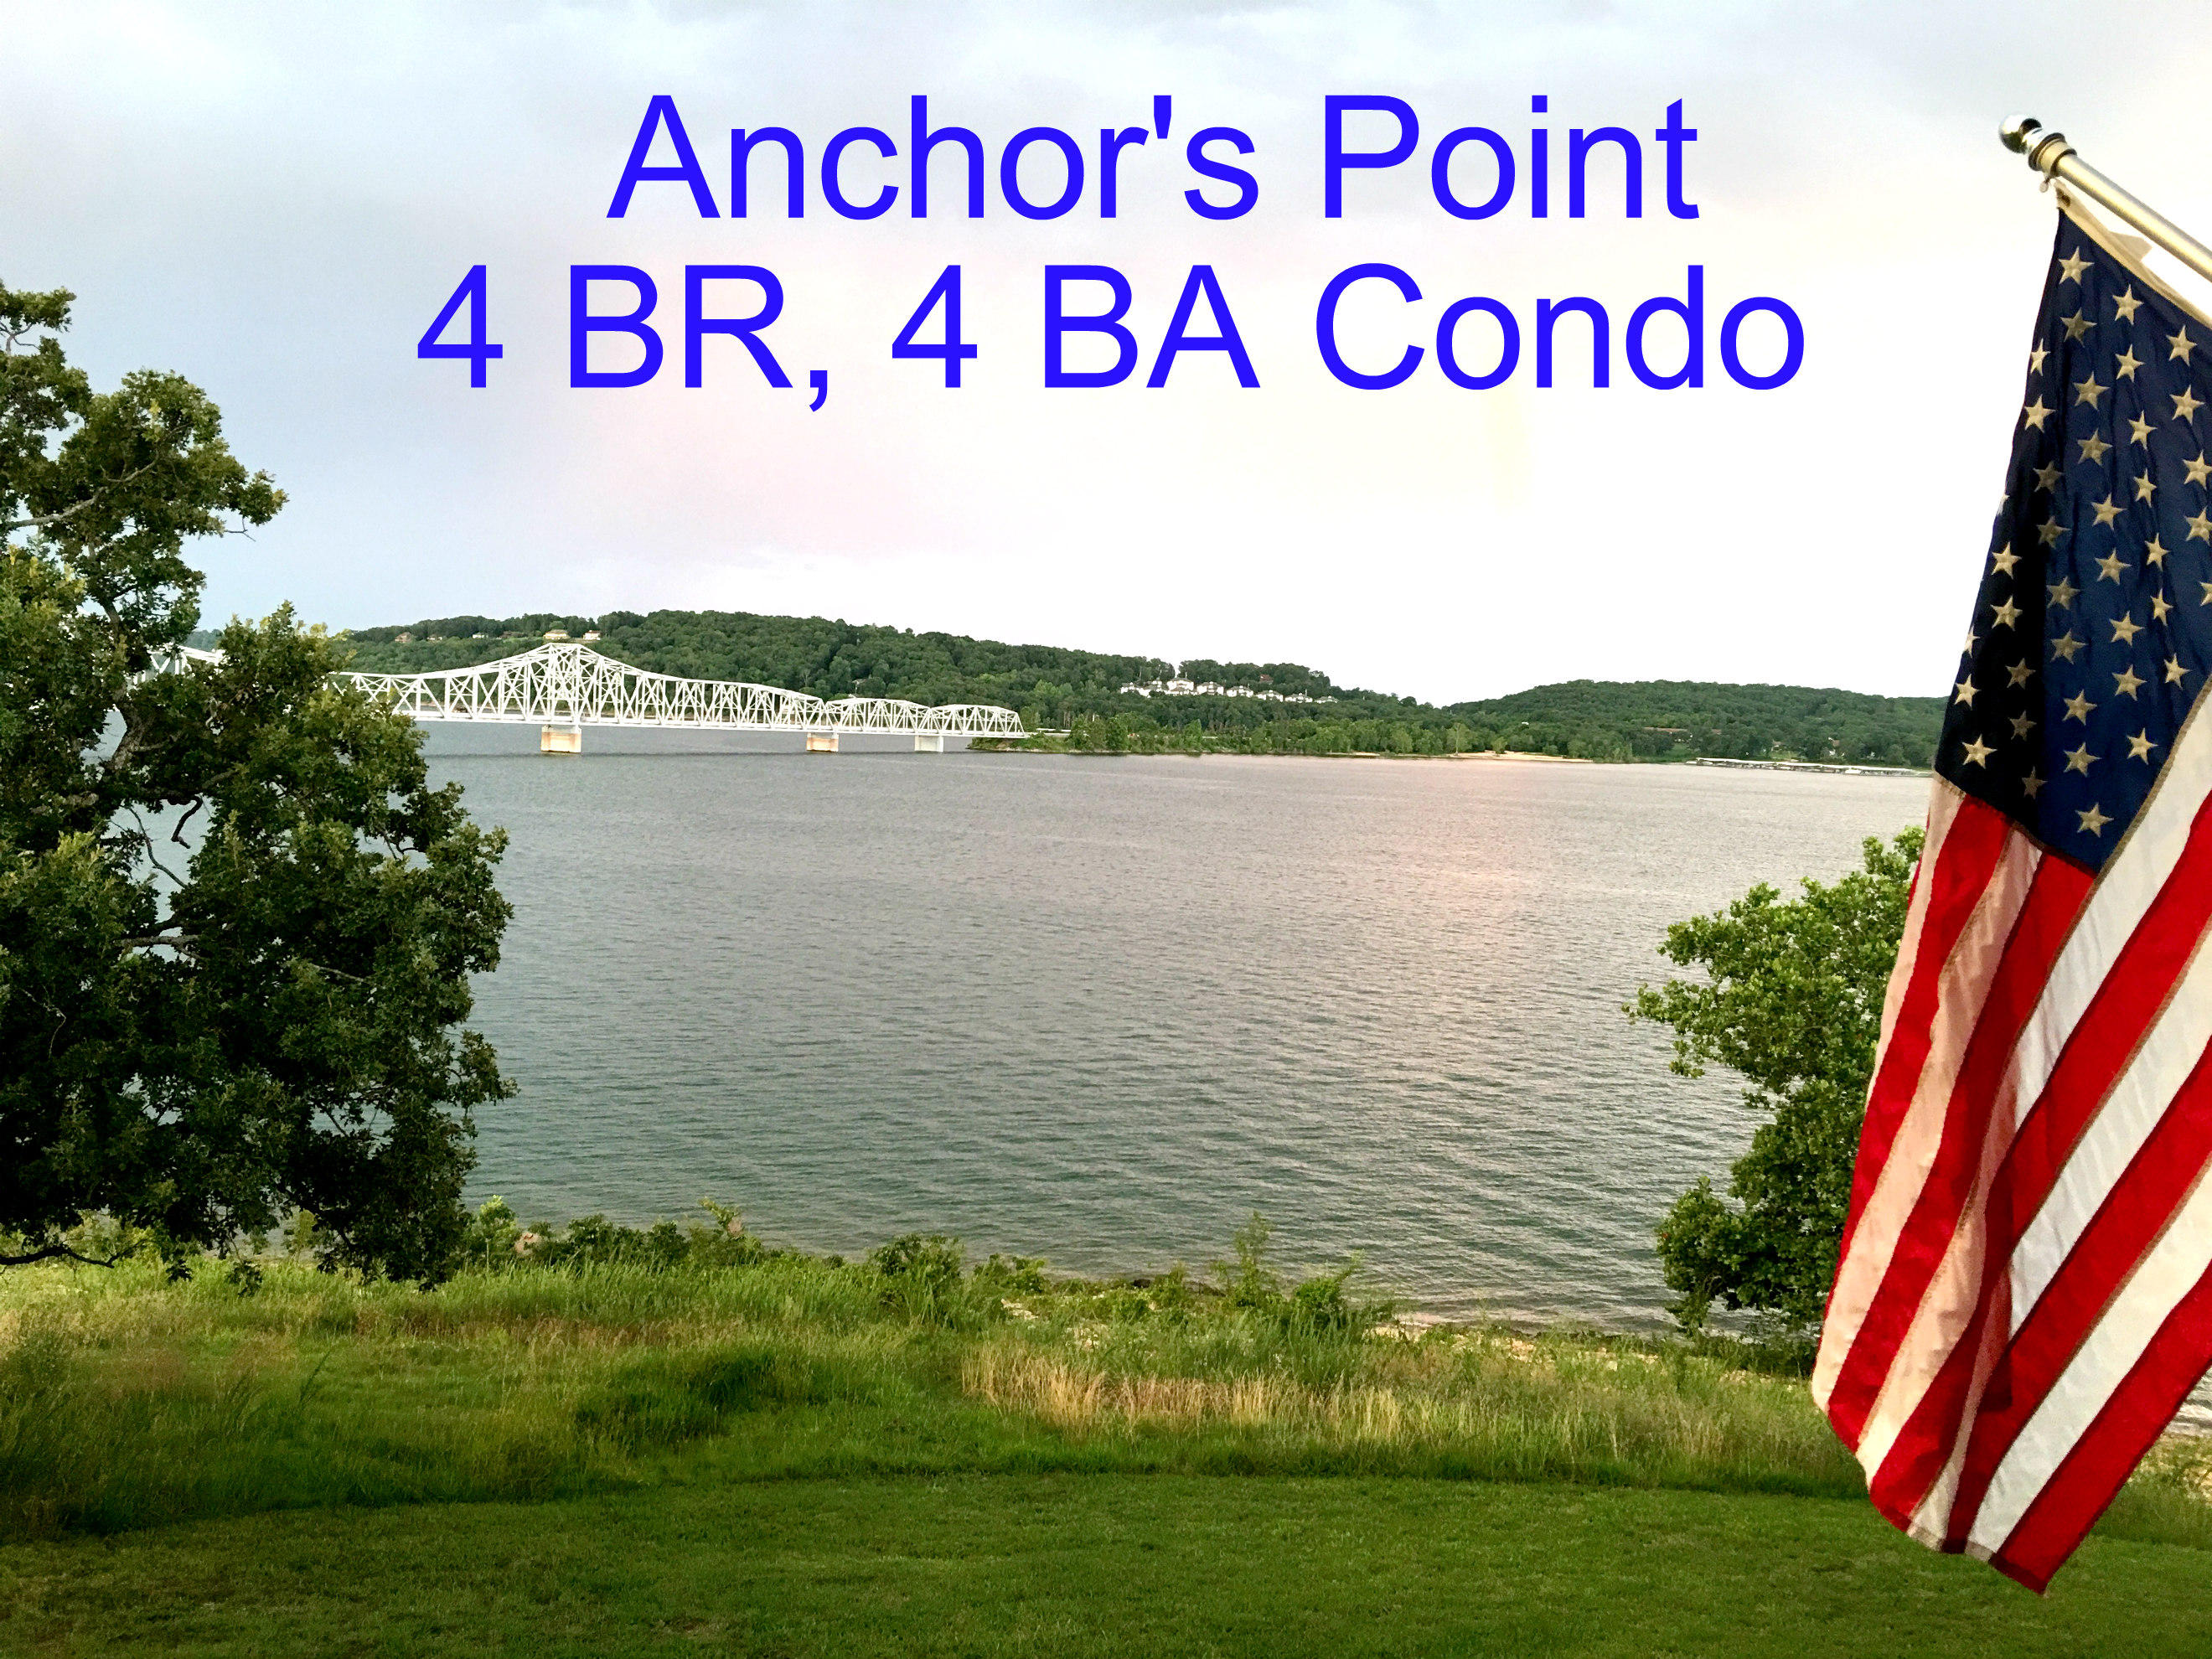 407 Anchor's Point Lane UNIT 504-498 Kimberling City, MO 65686